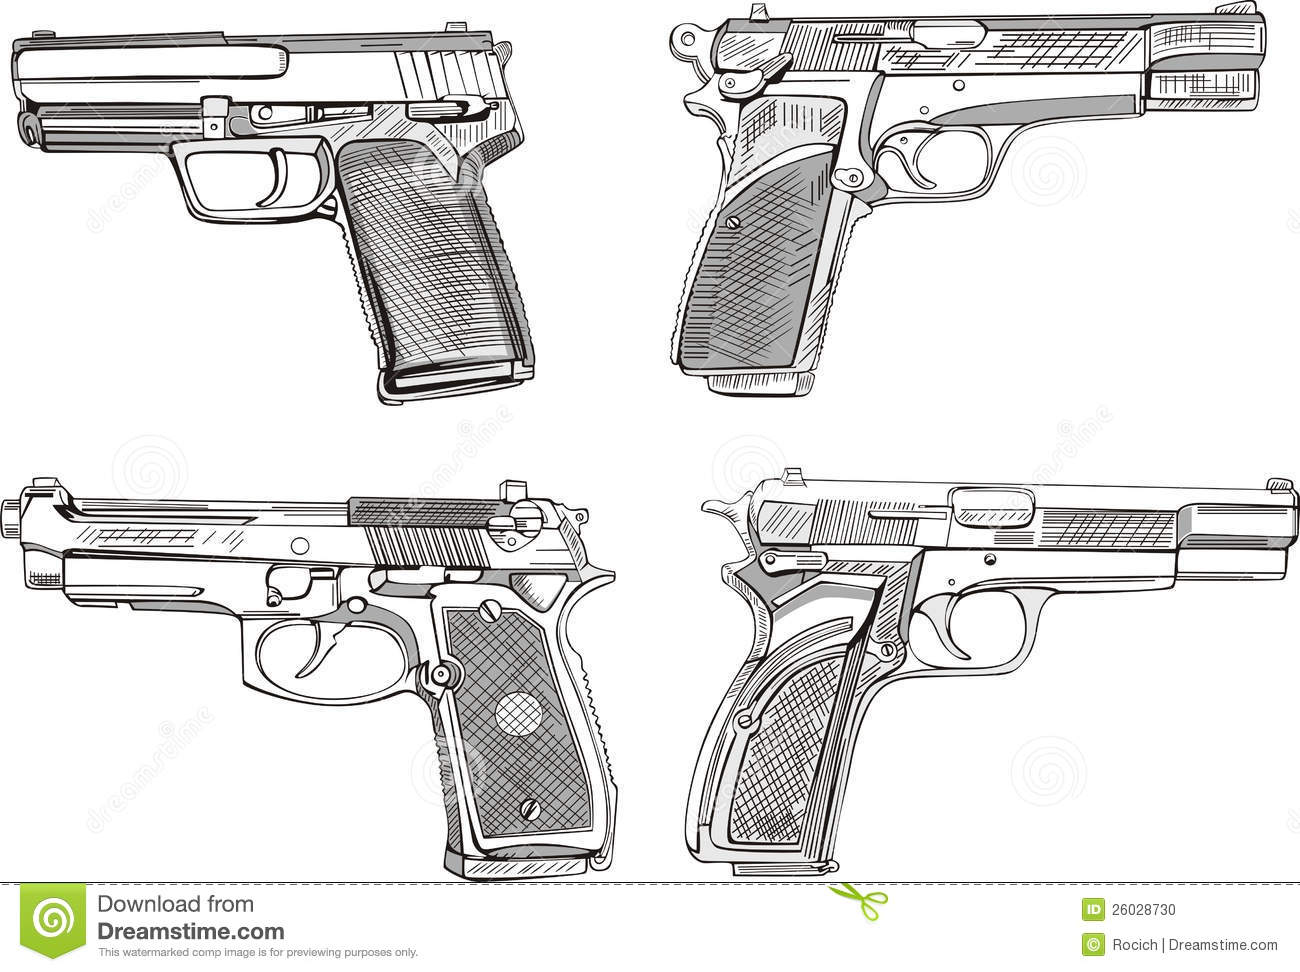 Pistol sketches set of black and white vector illustrations